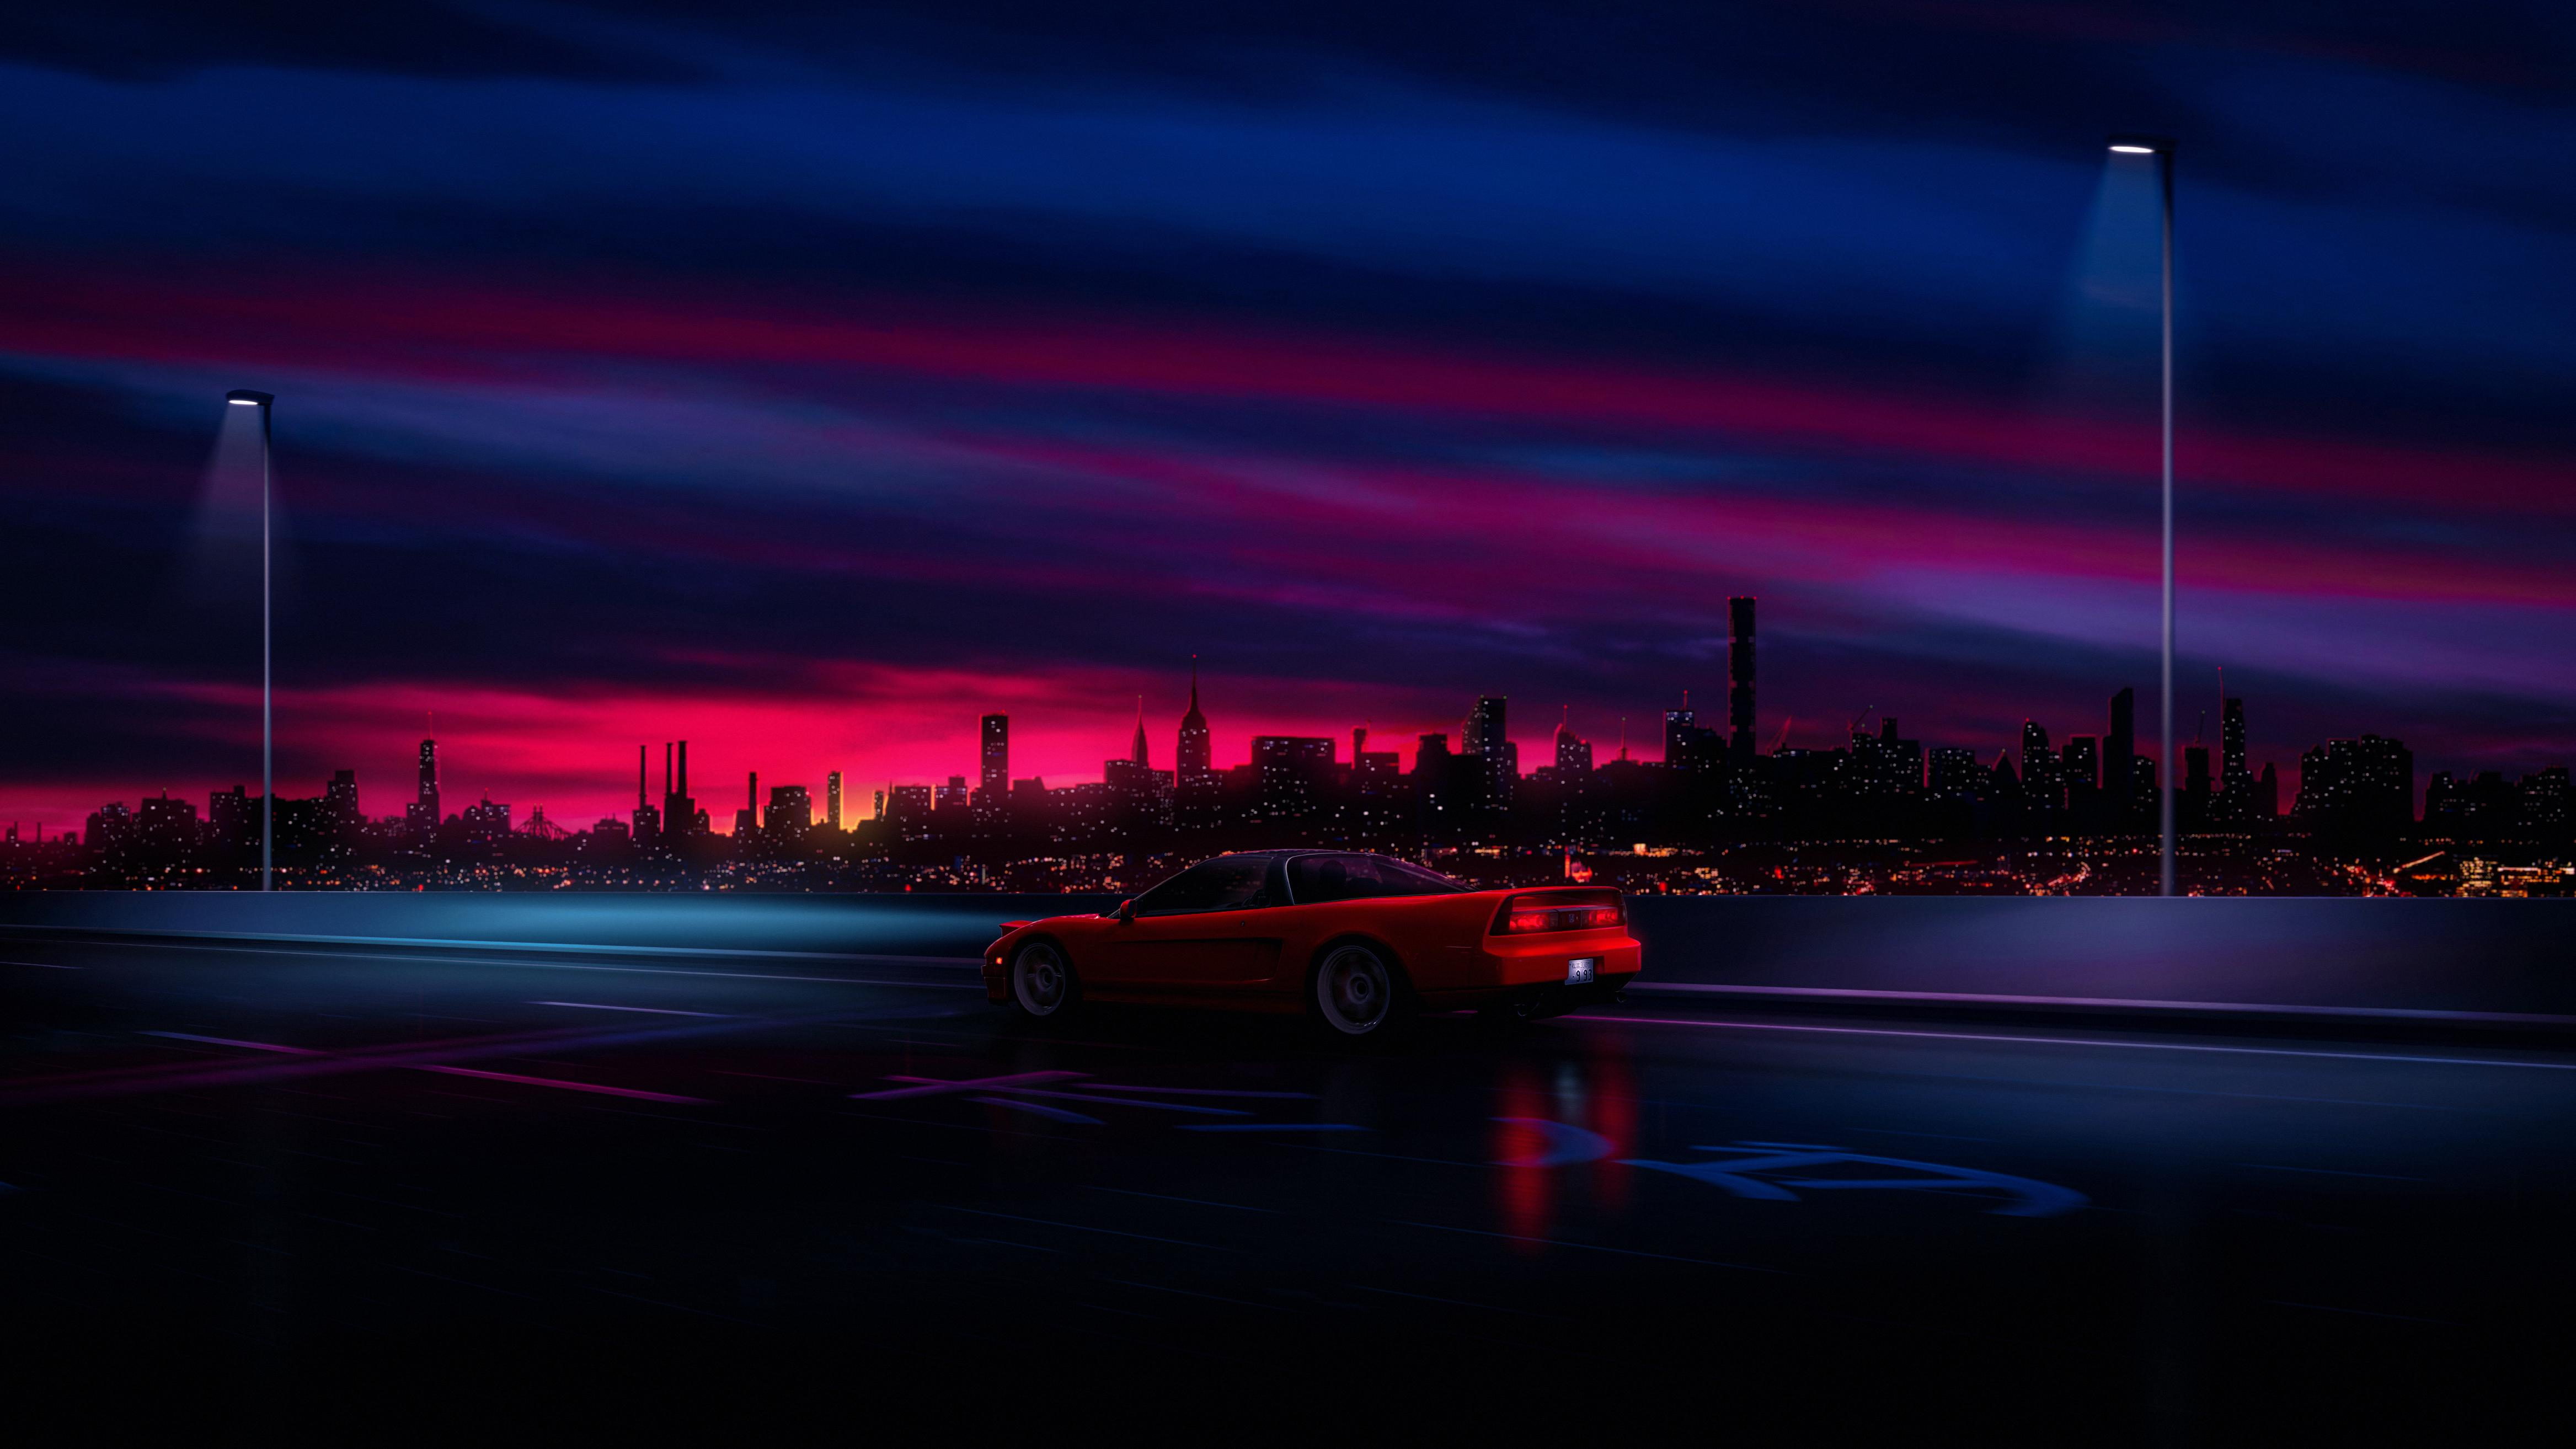 retrowave 4K wallpapers for your desktop or mobile screen and 4670x2627